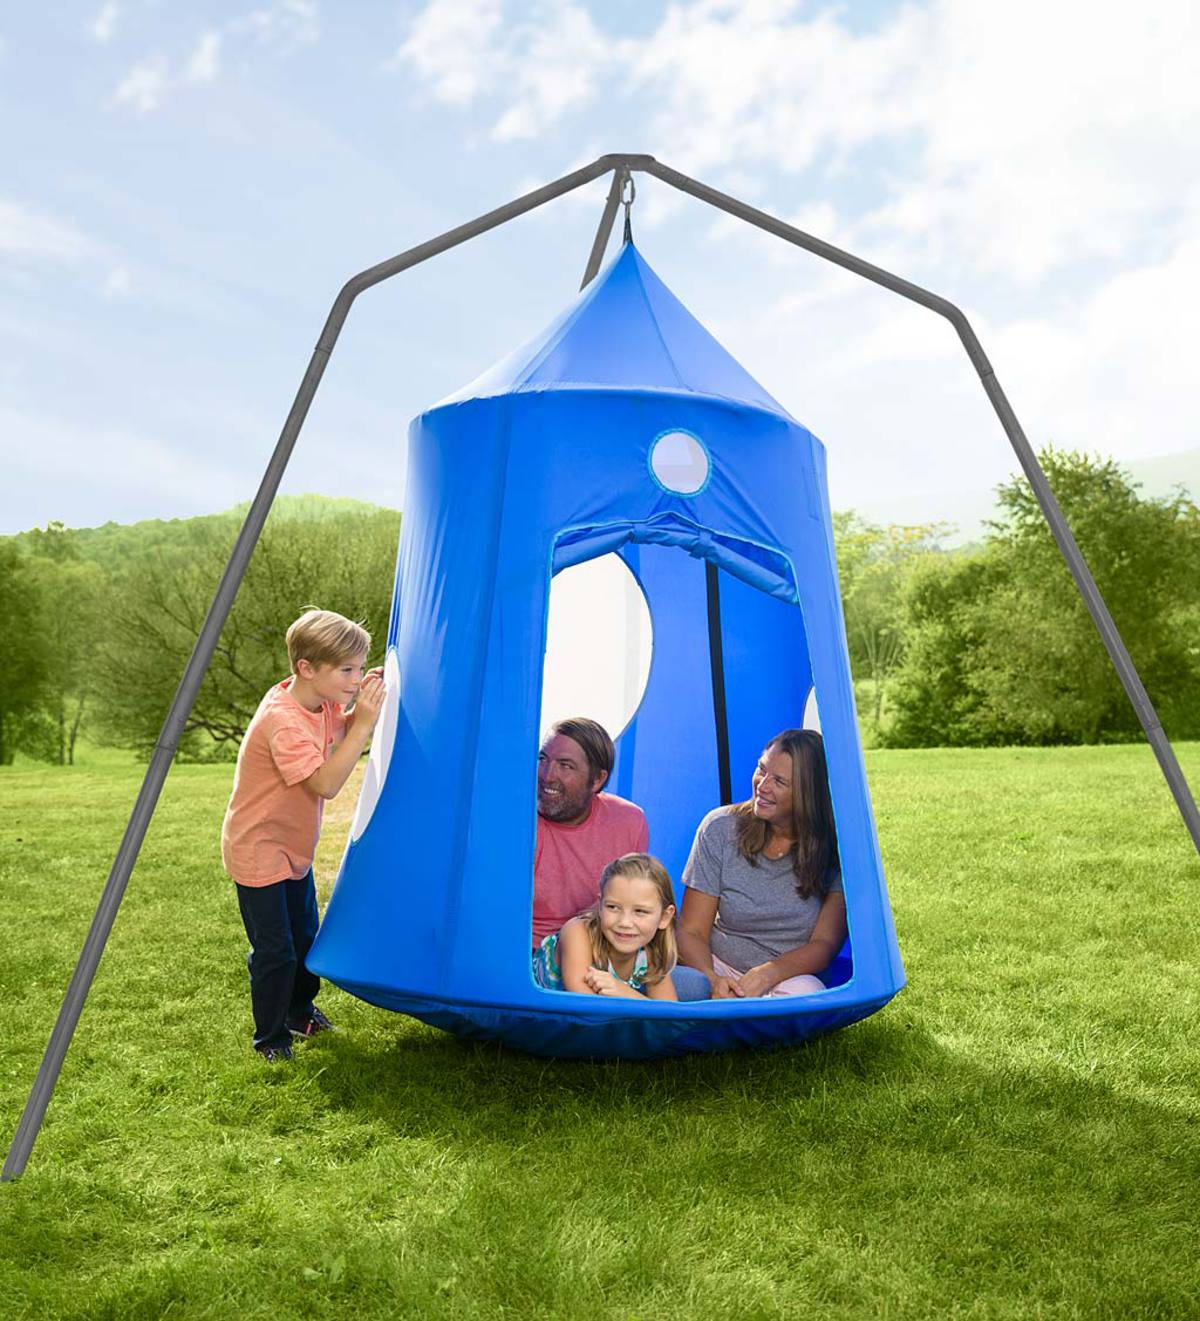 Nylon Family HugglePod HangOut® and Family HugglePod HangOut Stand Special - Blue